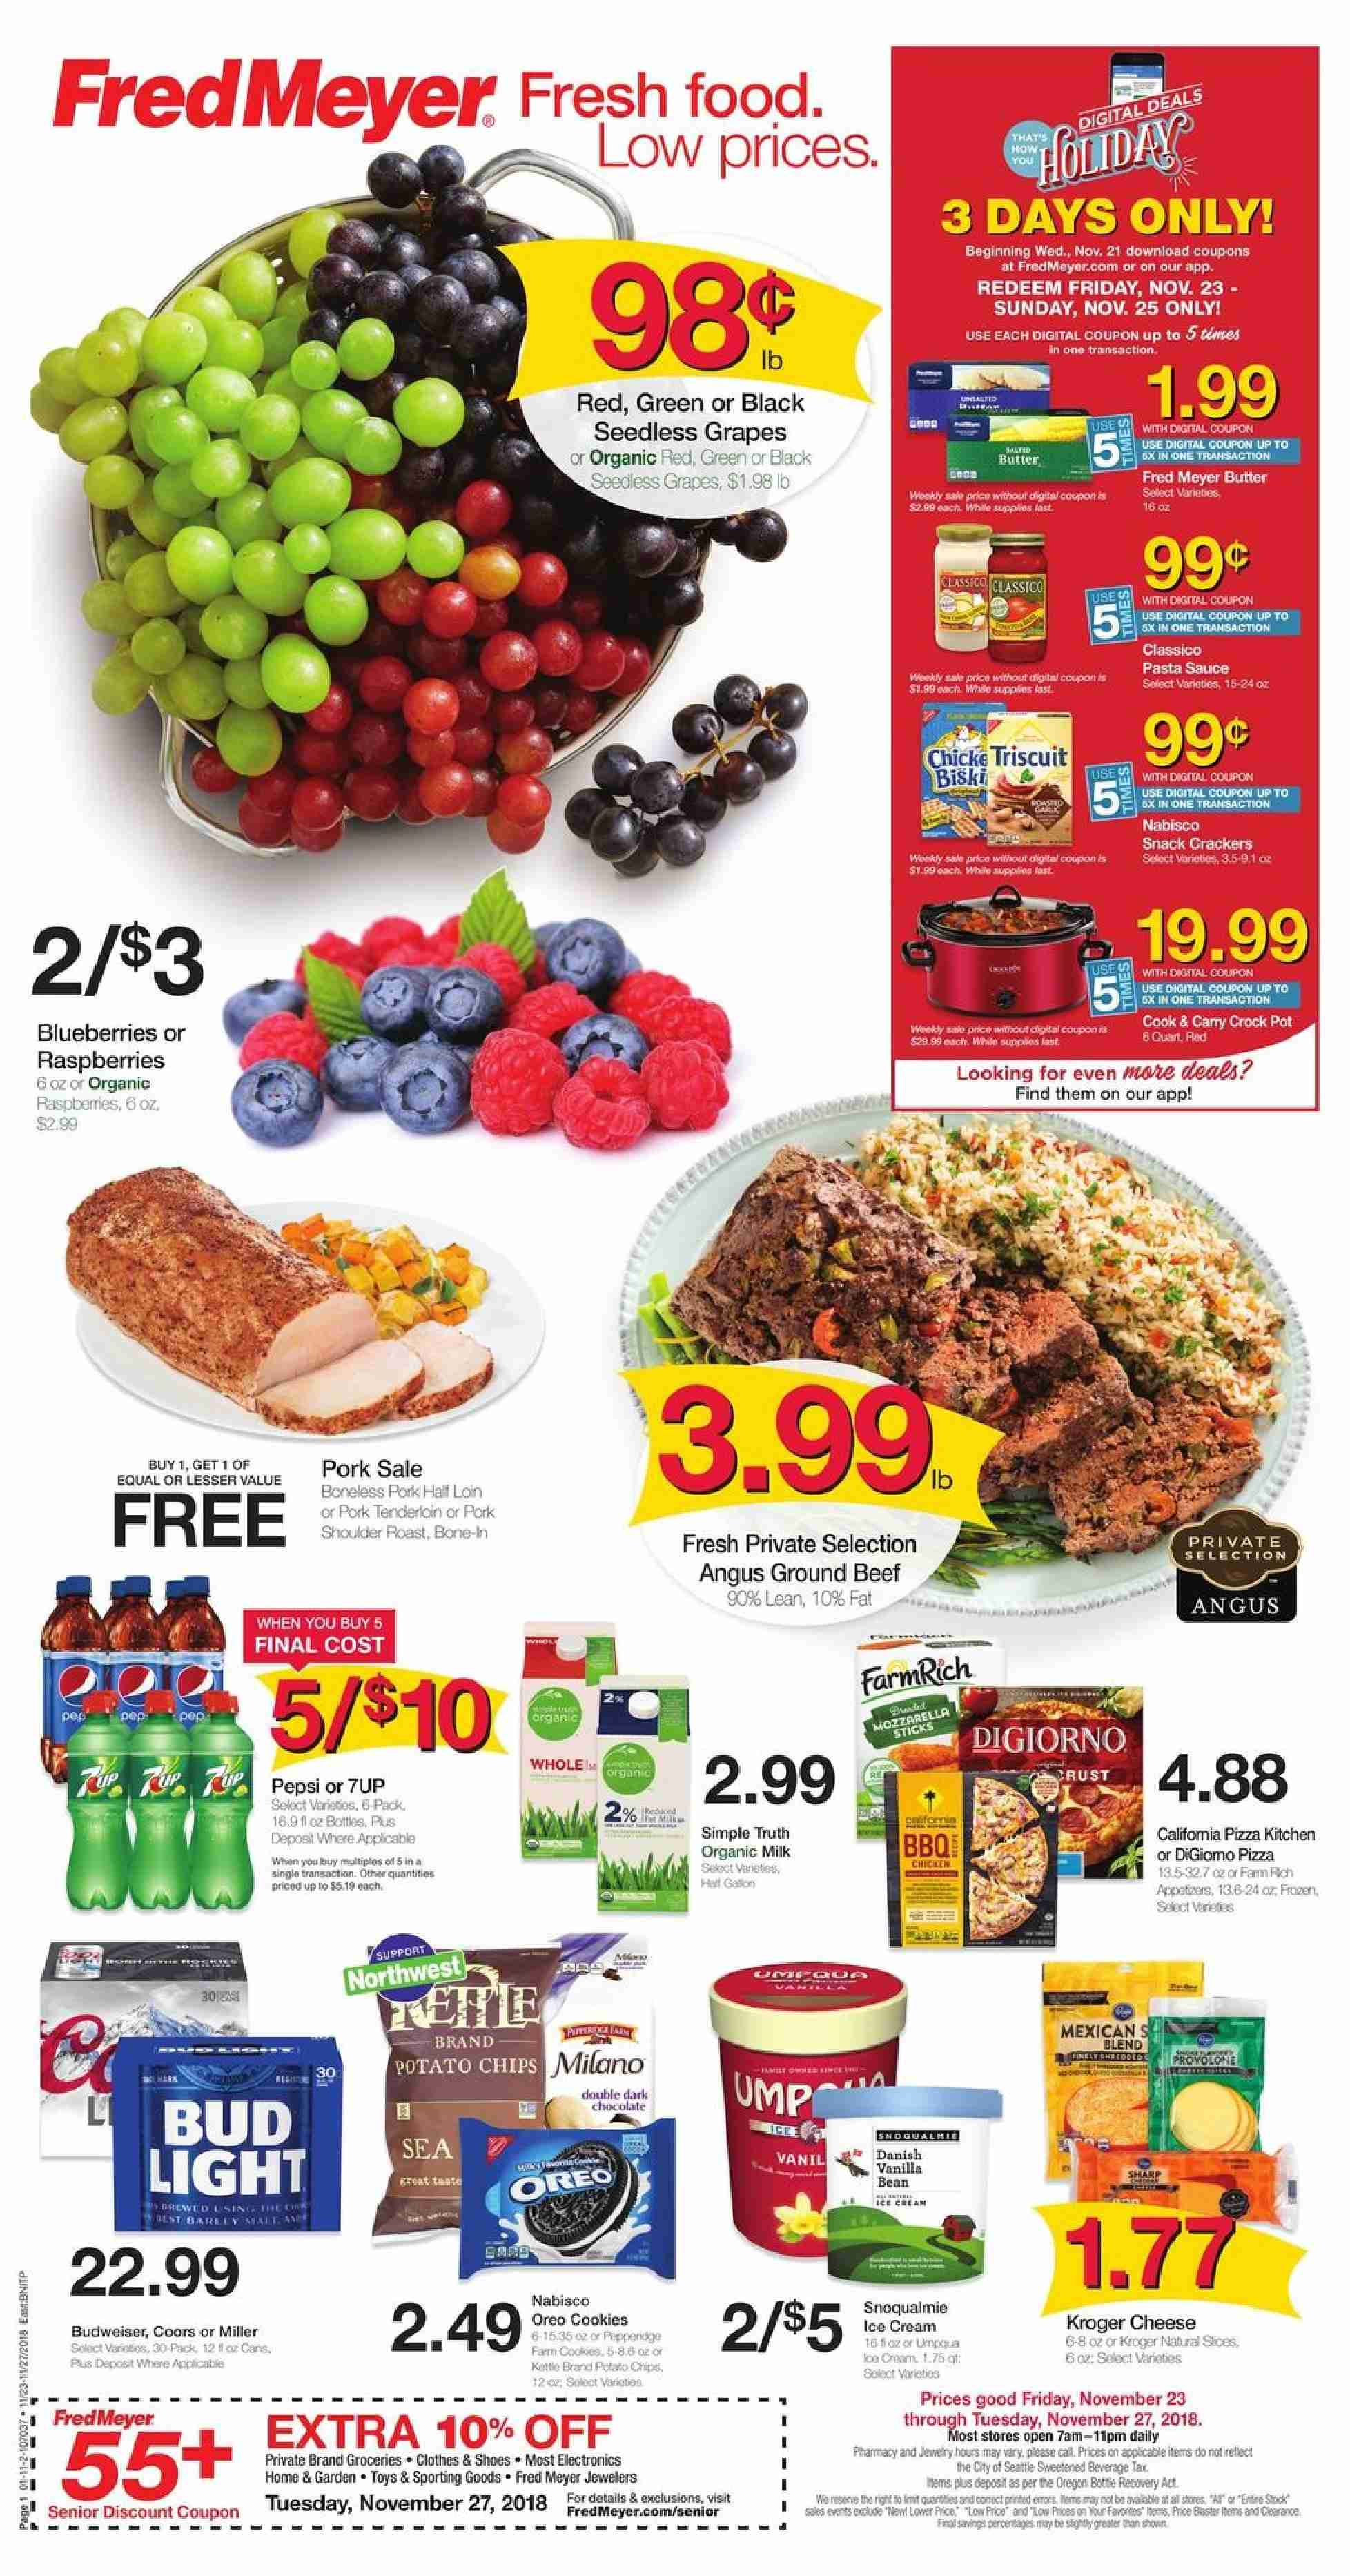 Fred Meyer Flyer - 11.23.2018 - 11.27.2018 - Sales products - Budweiser, Bud Light, Coors, blueberries, grapes, raspberries, seedless grapes, pizza, Oreo, organic milk, butter, bittersweet chocolate, cookies, chocolate, potato chips, chips, beef meat, ground beef, pork meat, pork shoulder, pork tenderloin, lid, pot, toys, tires, crock pot. Page 1.